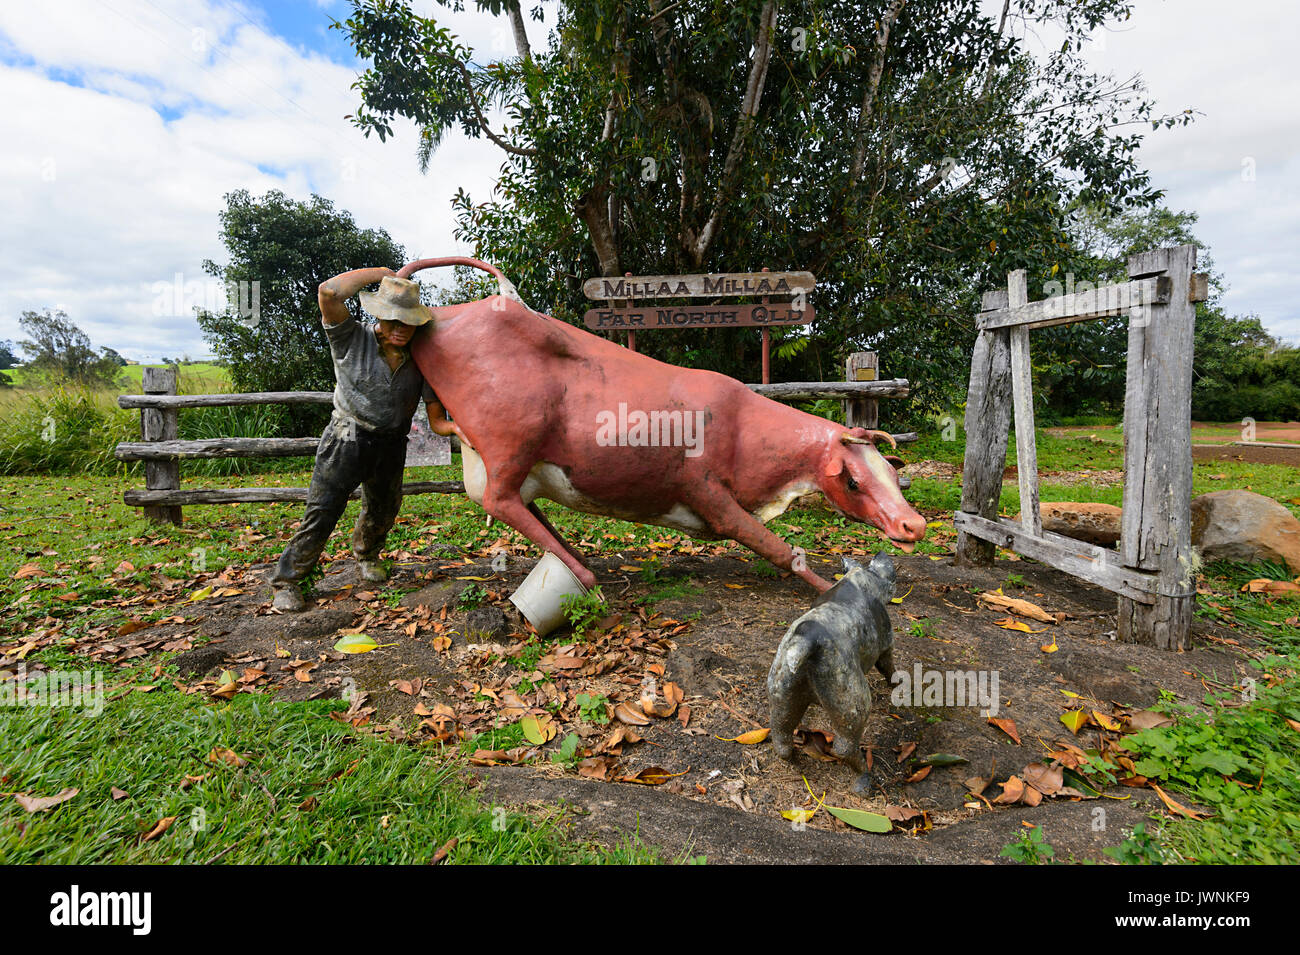 humorous-statue-depicting-a-farmer-attem